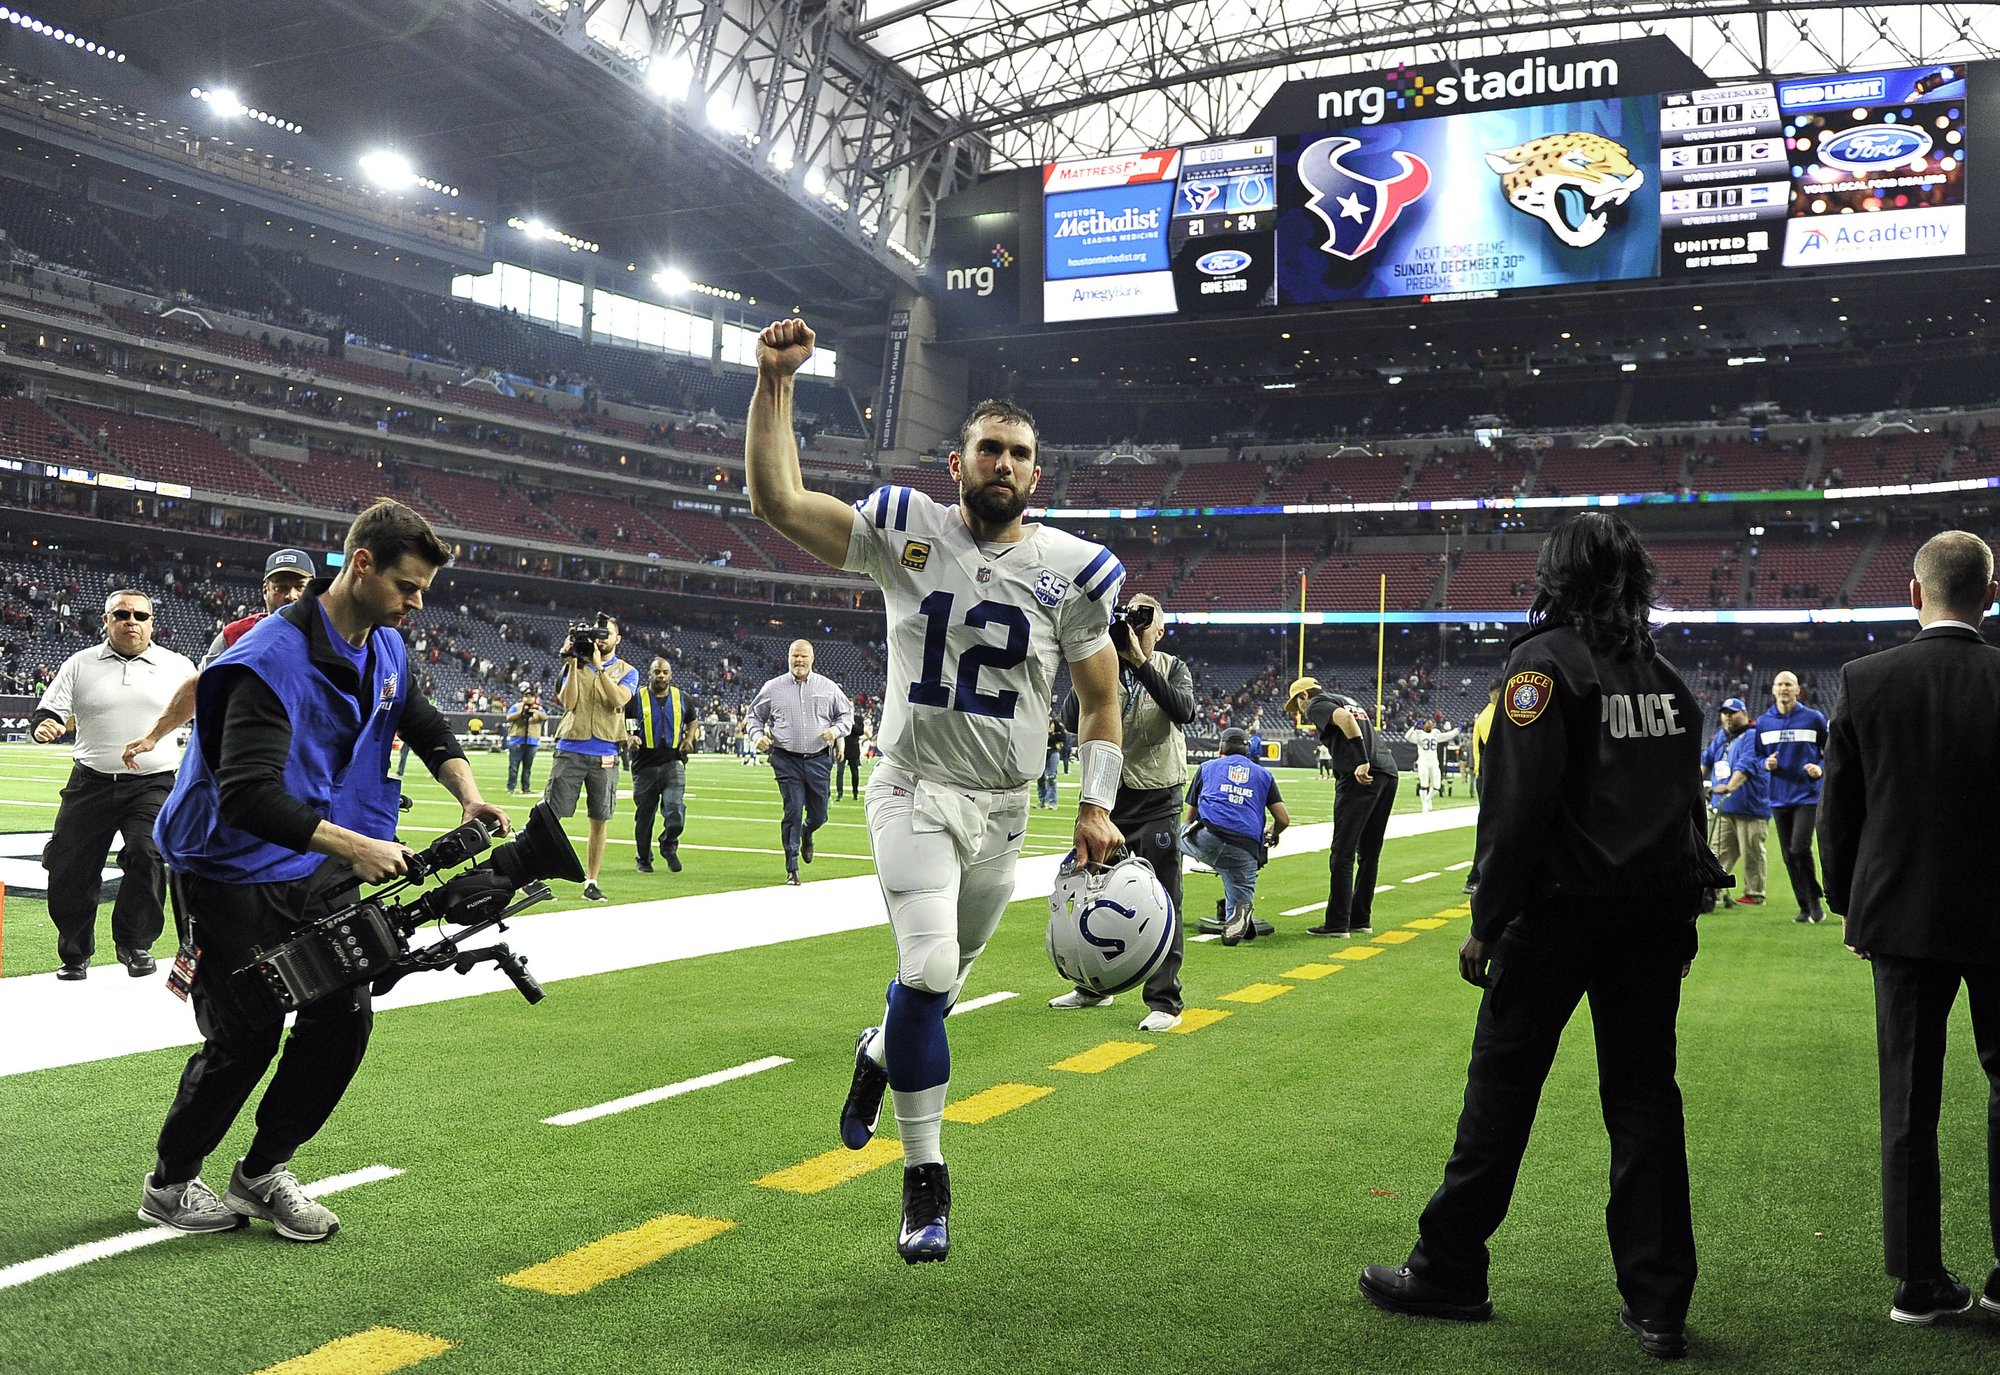 Late penalty helps Colts snap Texans  9-game winning streak 9e1d2fea5